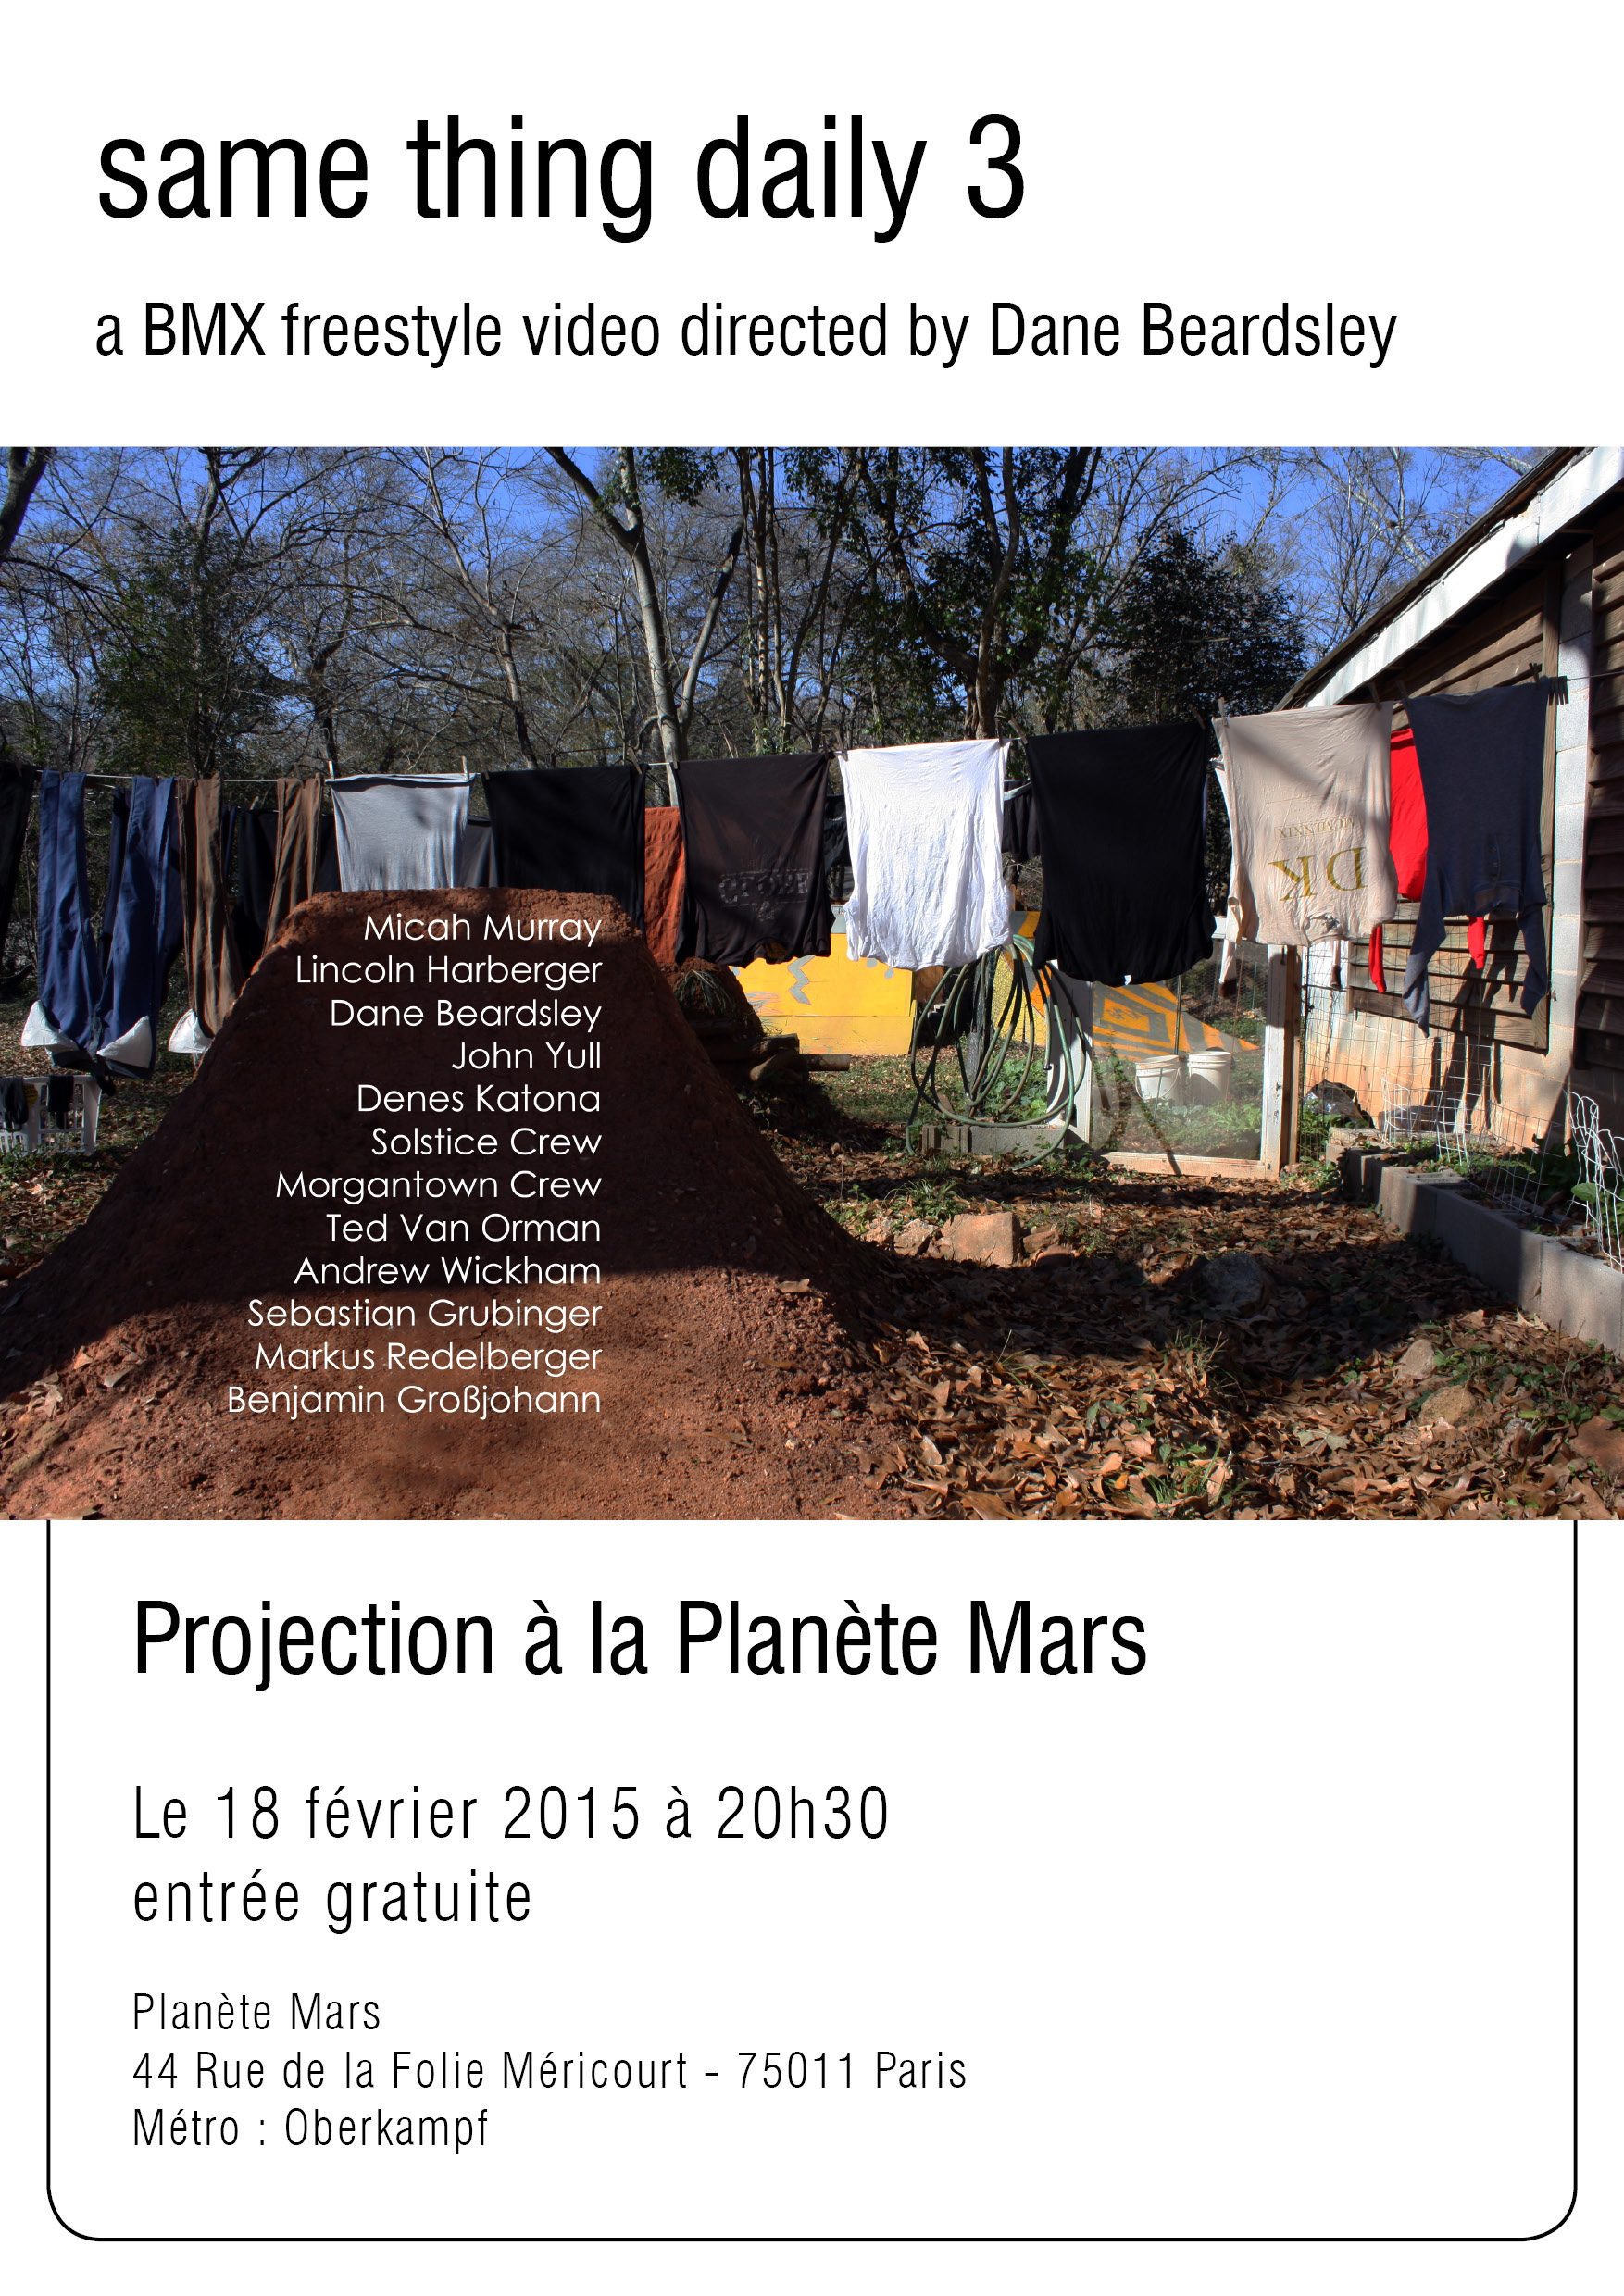 STD3_flyer_Projection_Paris_18fev2015